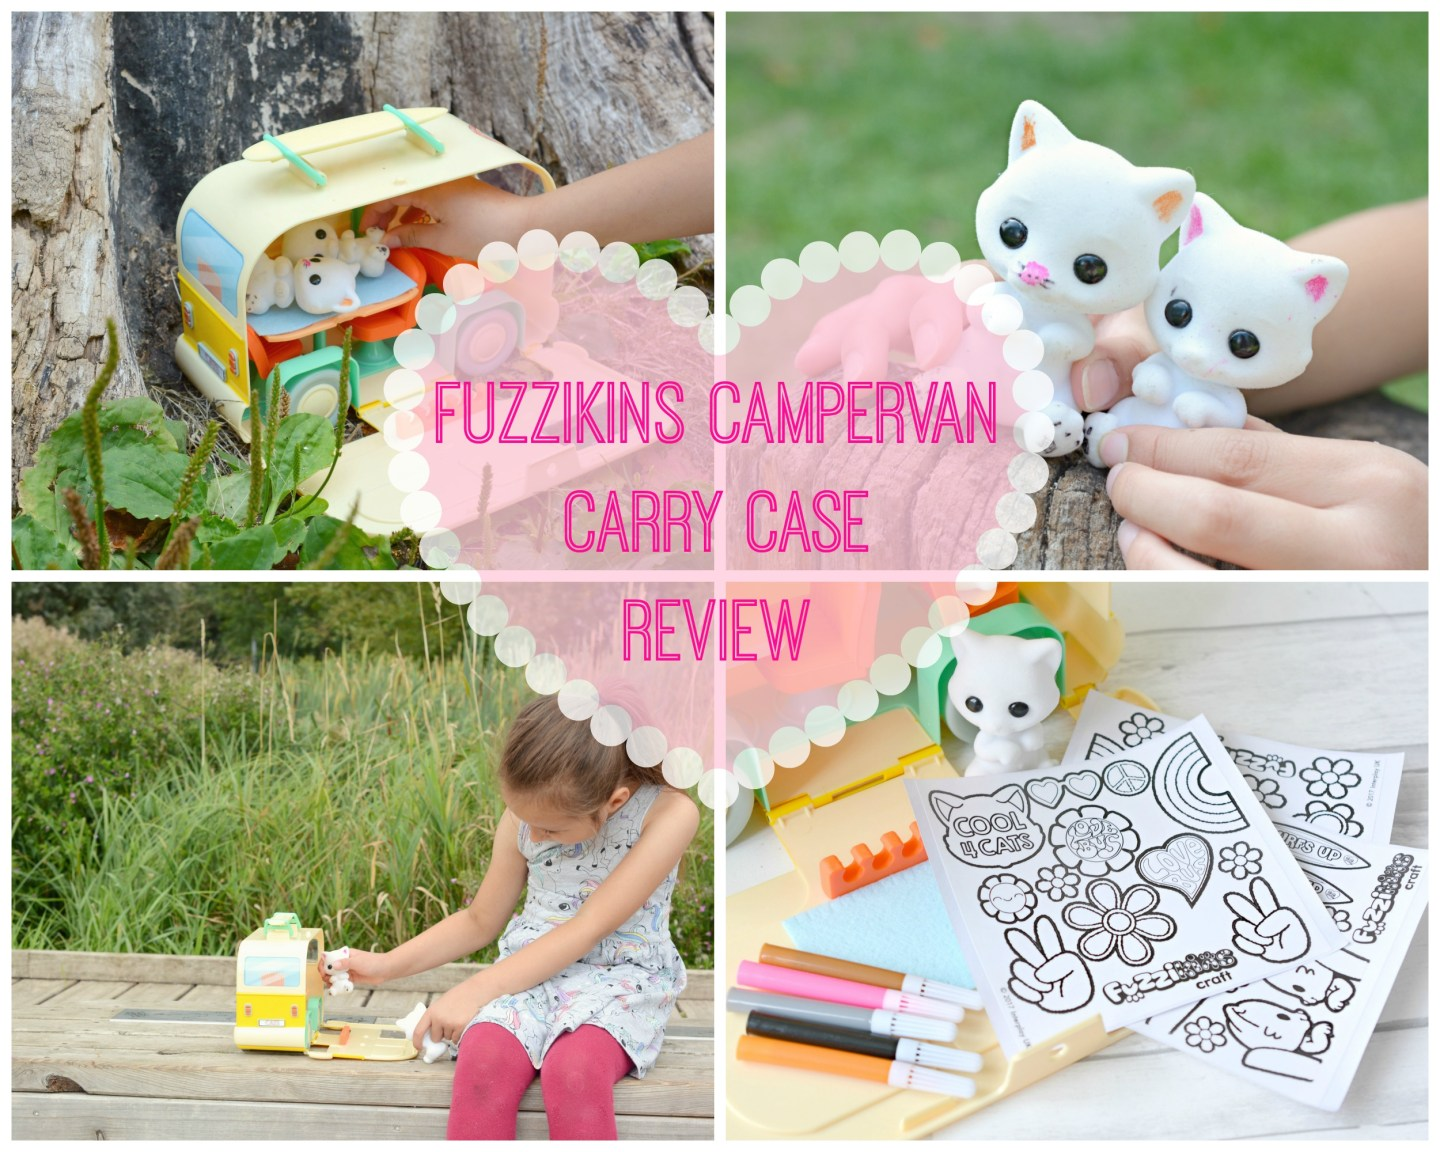 Going on an Adventure with Lila's Fuzzikins Campervan